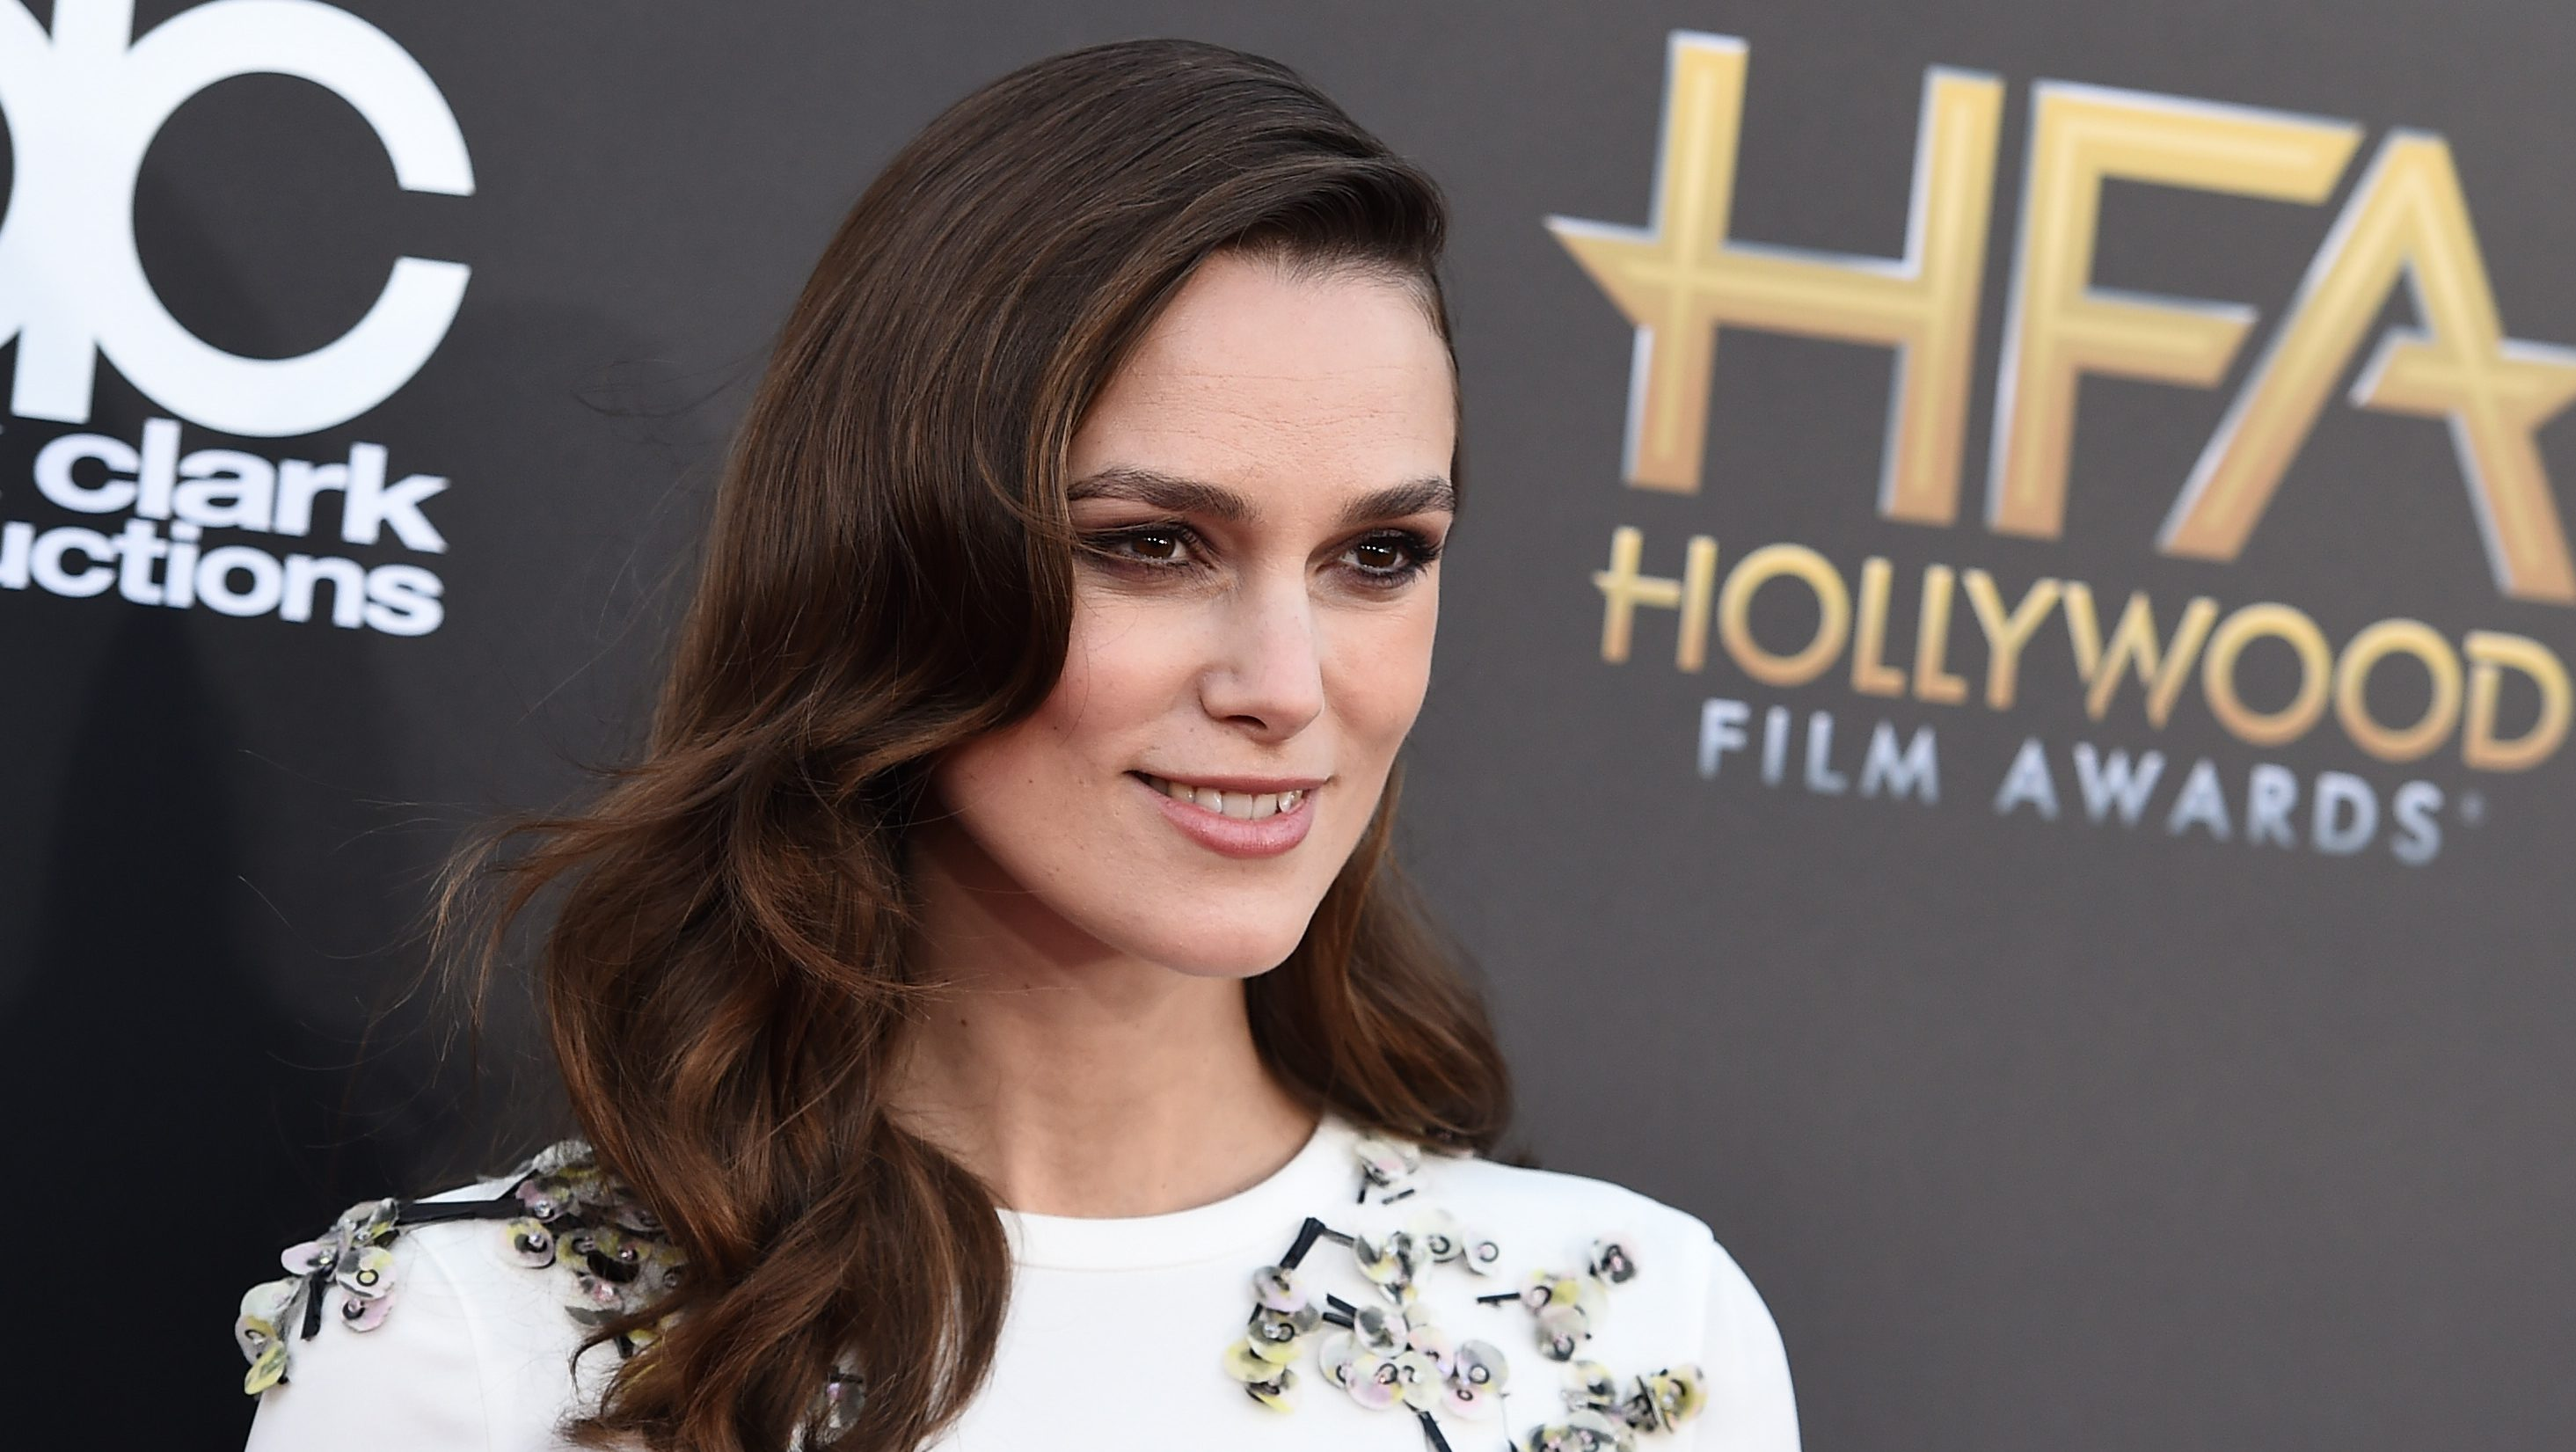 Keira Knightley In Talks To Star In Camille Griffin And Maven Screen Media's 'Conception' For Searchlight